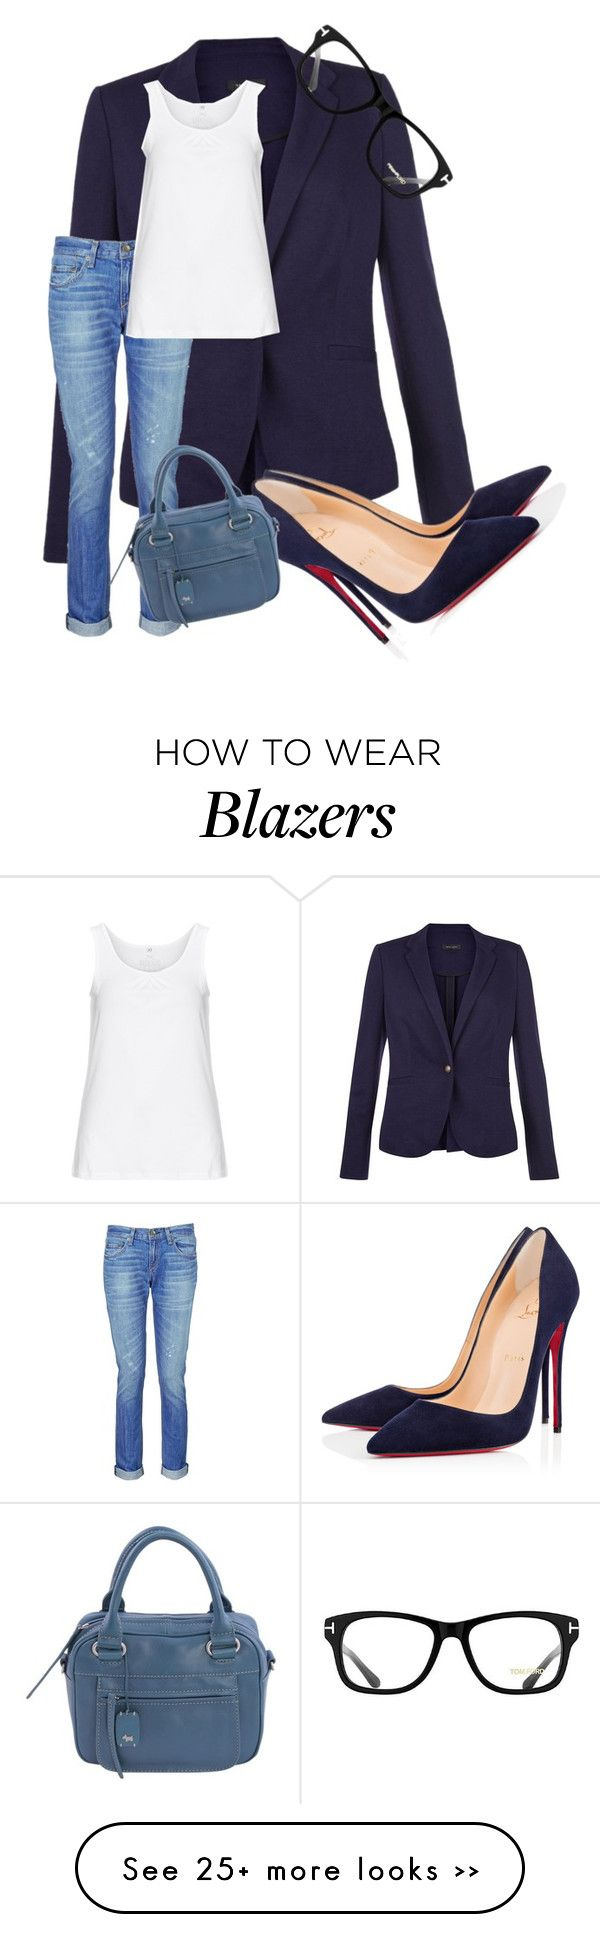 """That's today sorted"" by gem13 on Polyvore featuring rag & bone, Christian Louboutin, Zhenzi, Radley and Tom Ford"